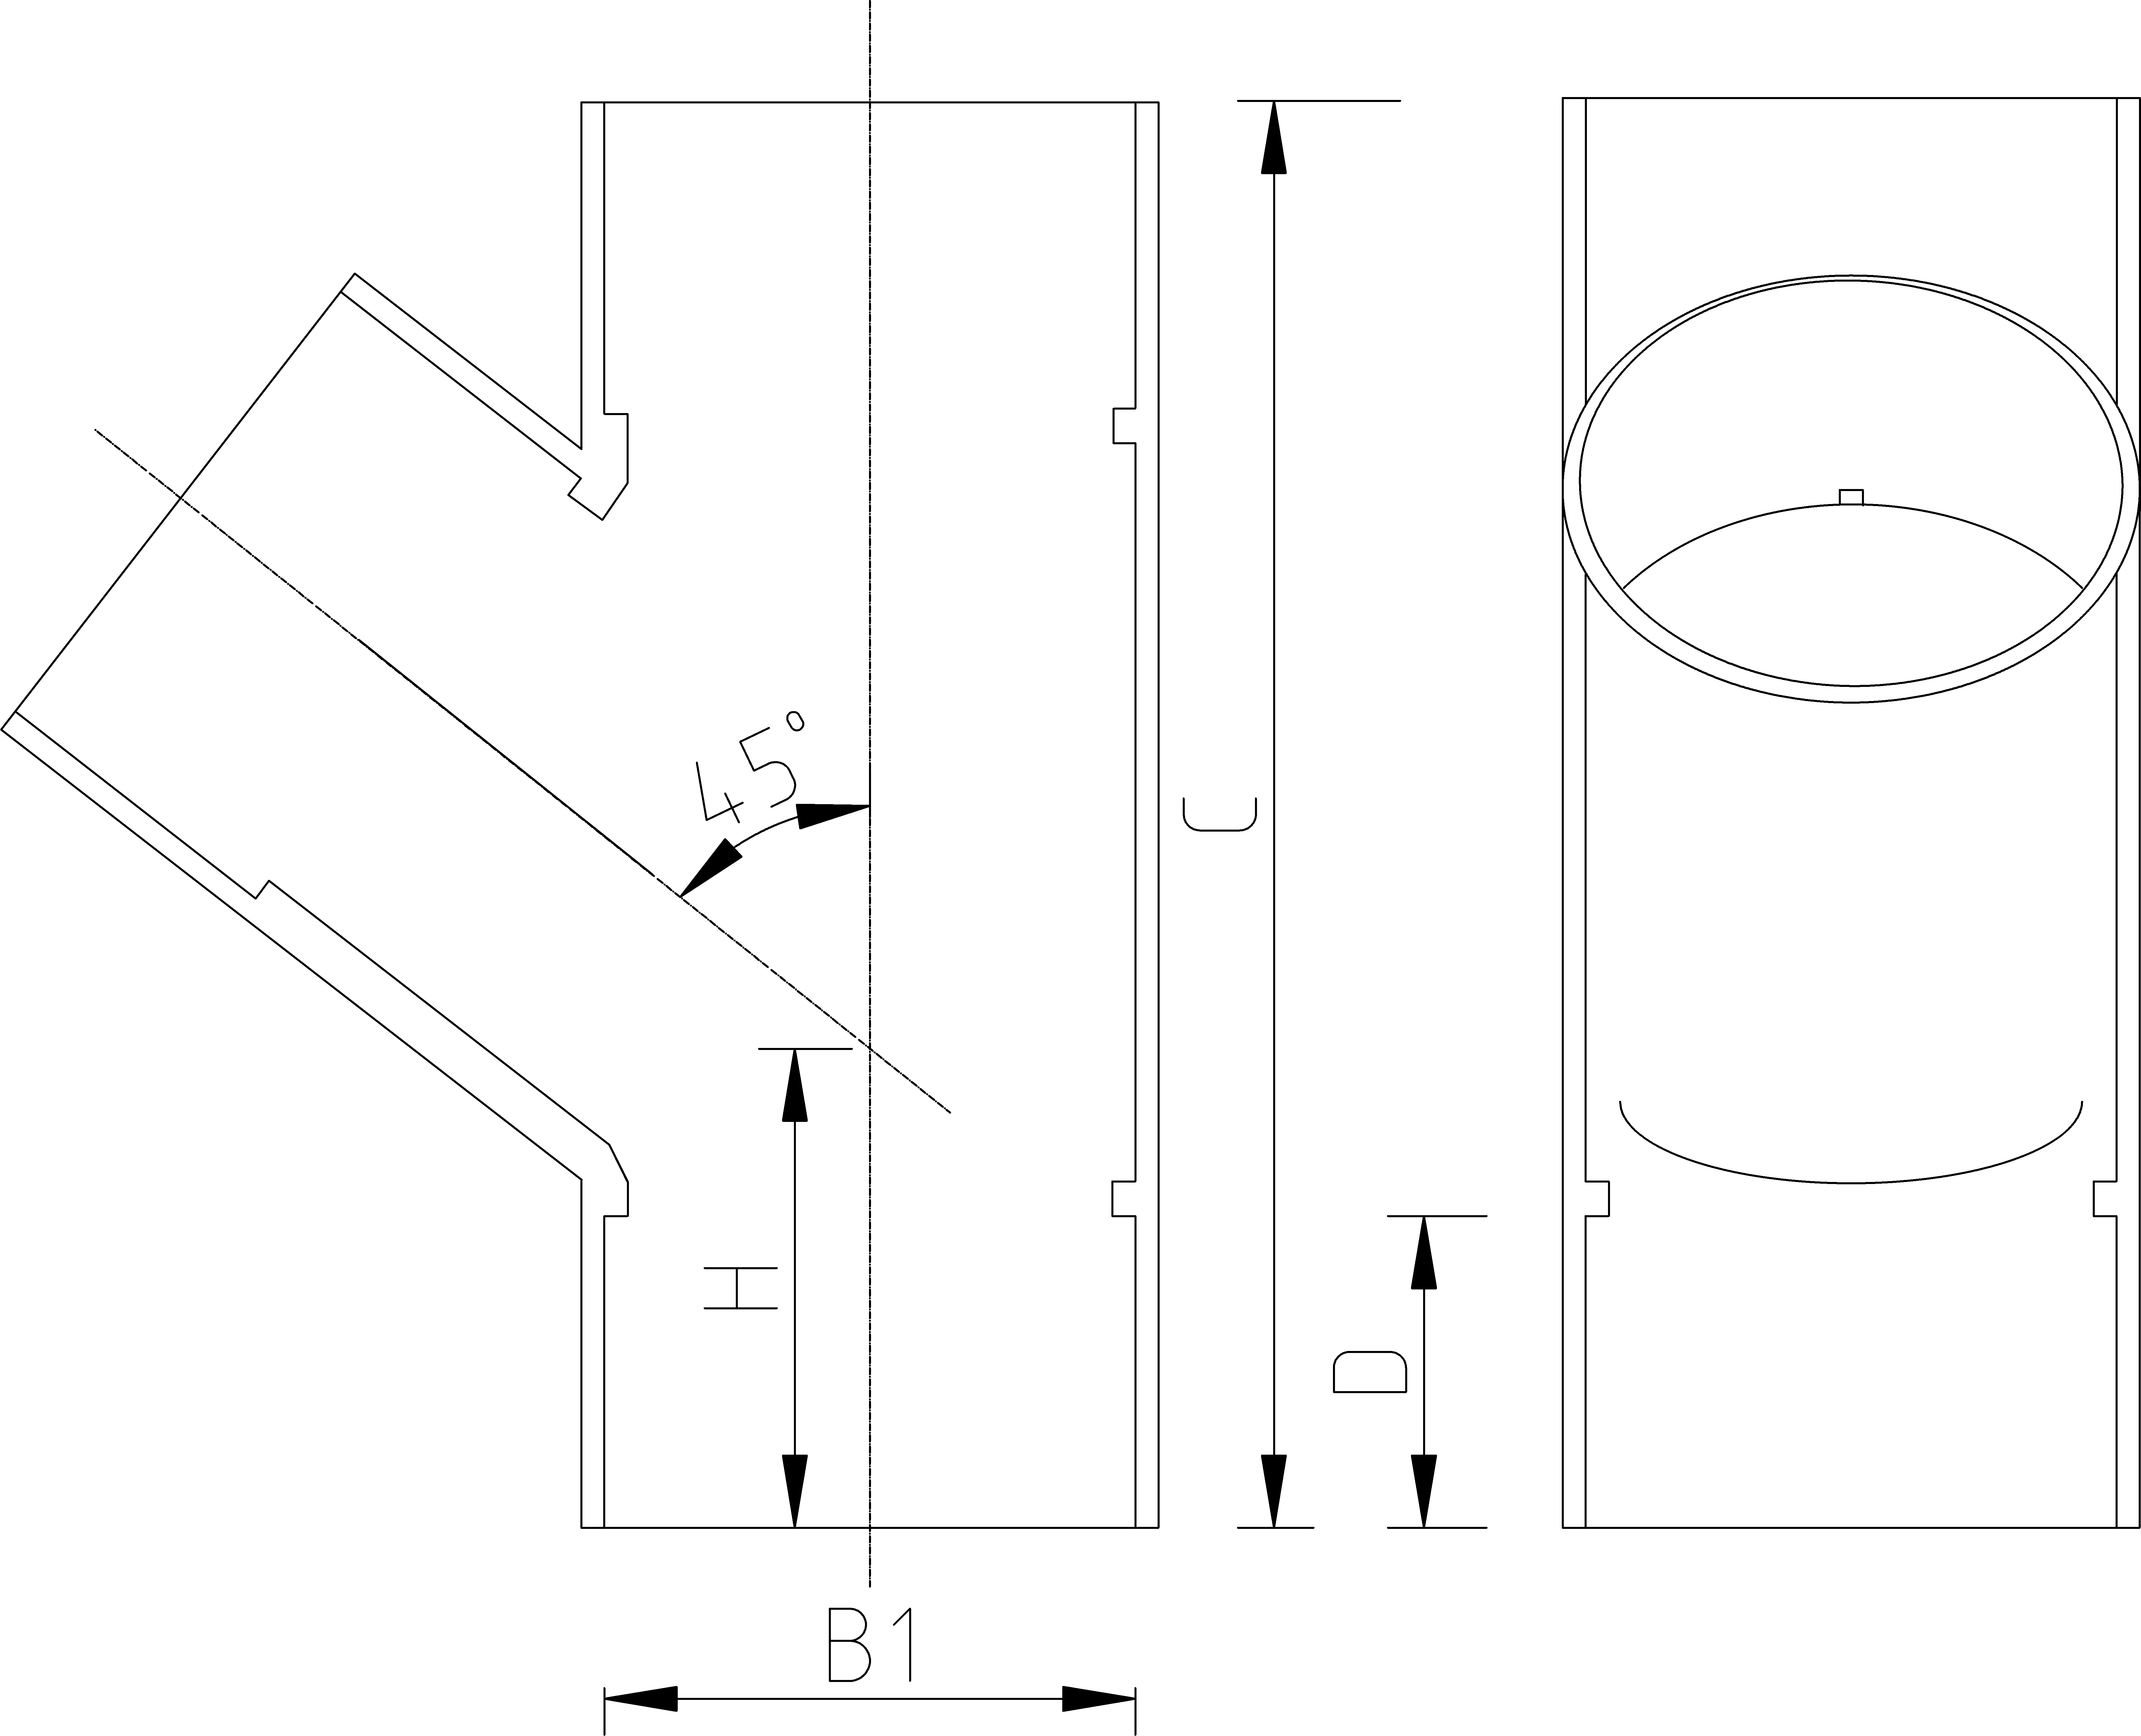 20mm 45 Tee Dimensions Drawing